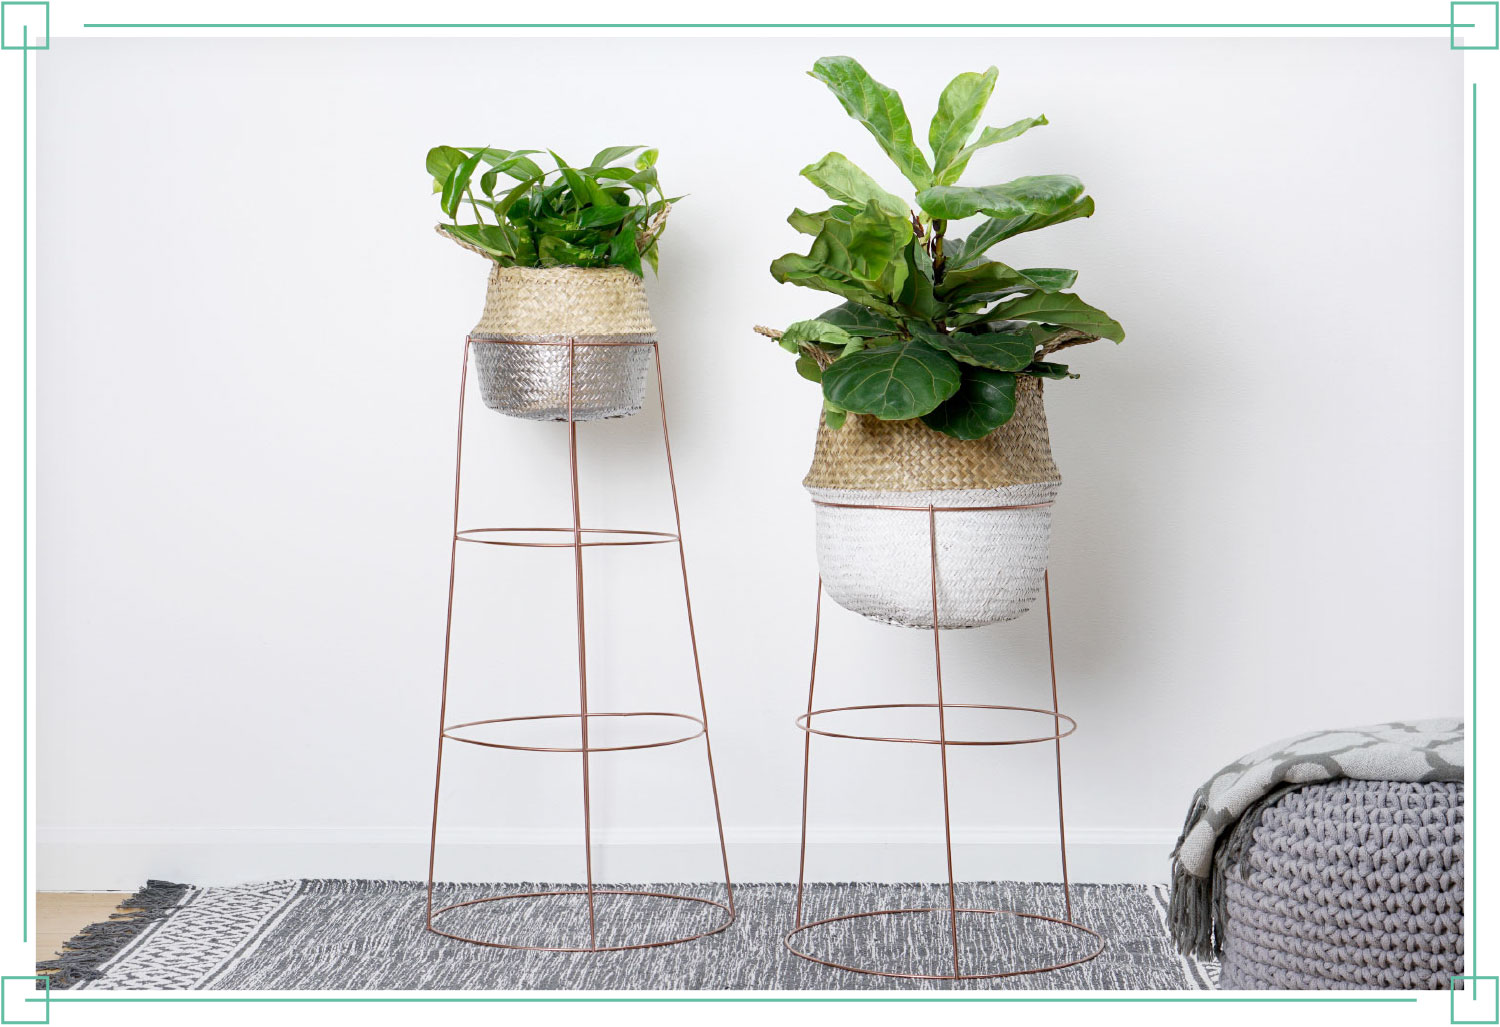 diy plant stand hardware hacks tomato cage plant stand with grey carpeting below